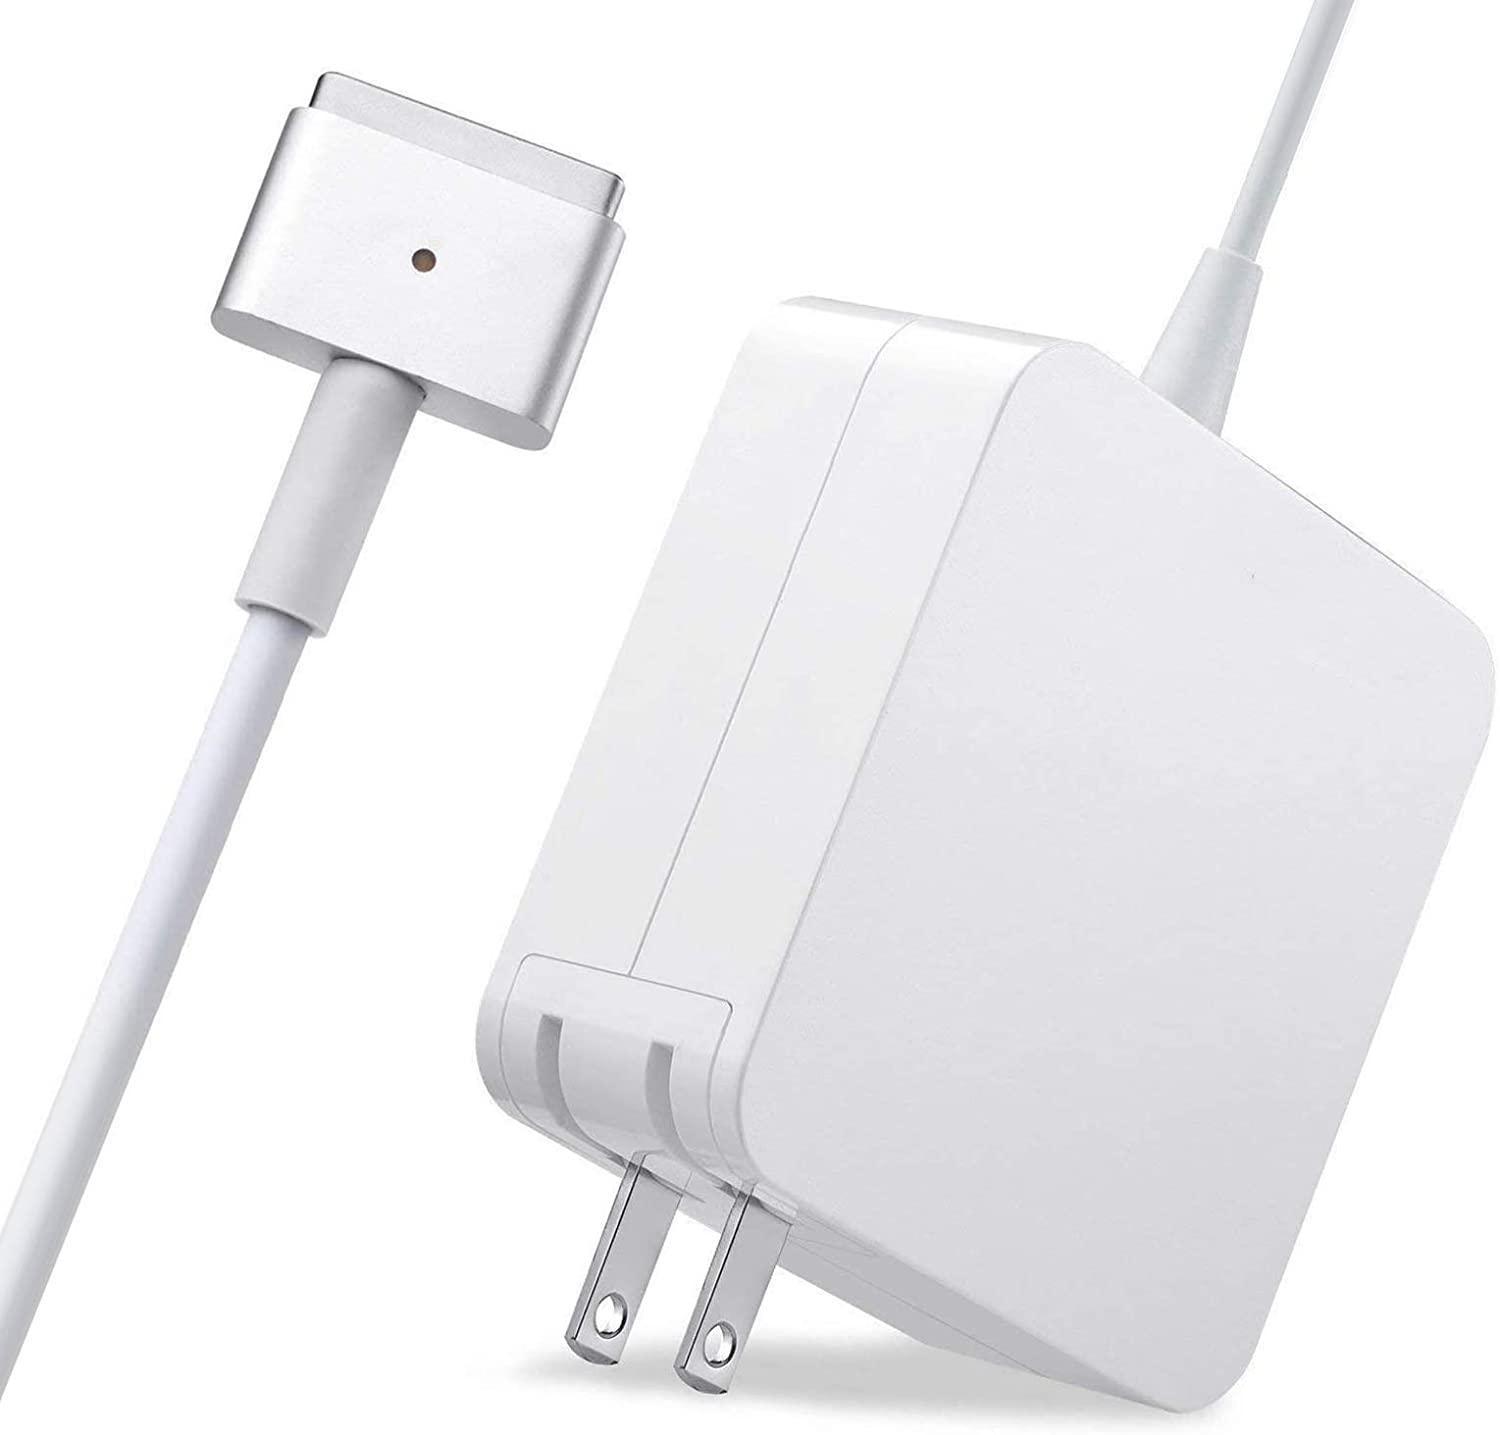 Charger for Apple MacBook Air Charger Cord Mac Book Air Laptop Computer 2020 11 13 Inch 45w Magsafe 2 T Type After Mid 2012 2015 A1244 A1269 A1270 A1466